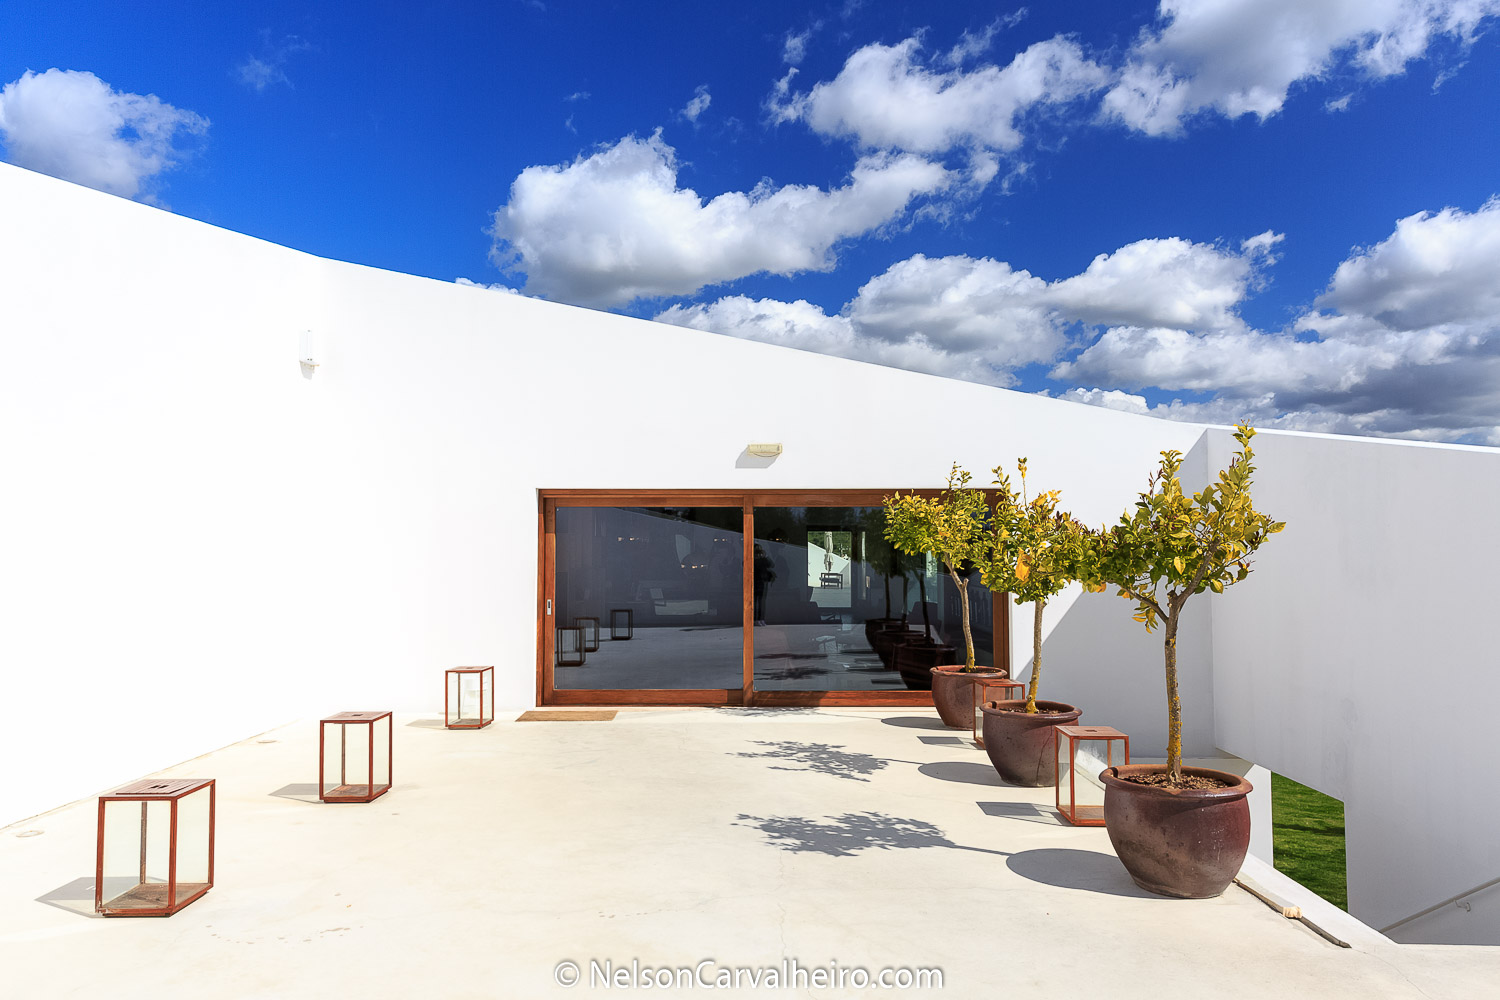 Alentejo – Europe's Golden Treasure